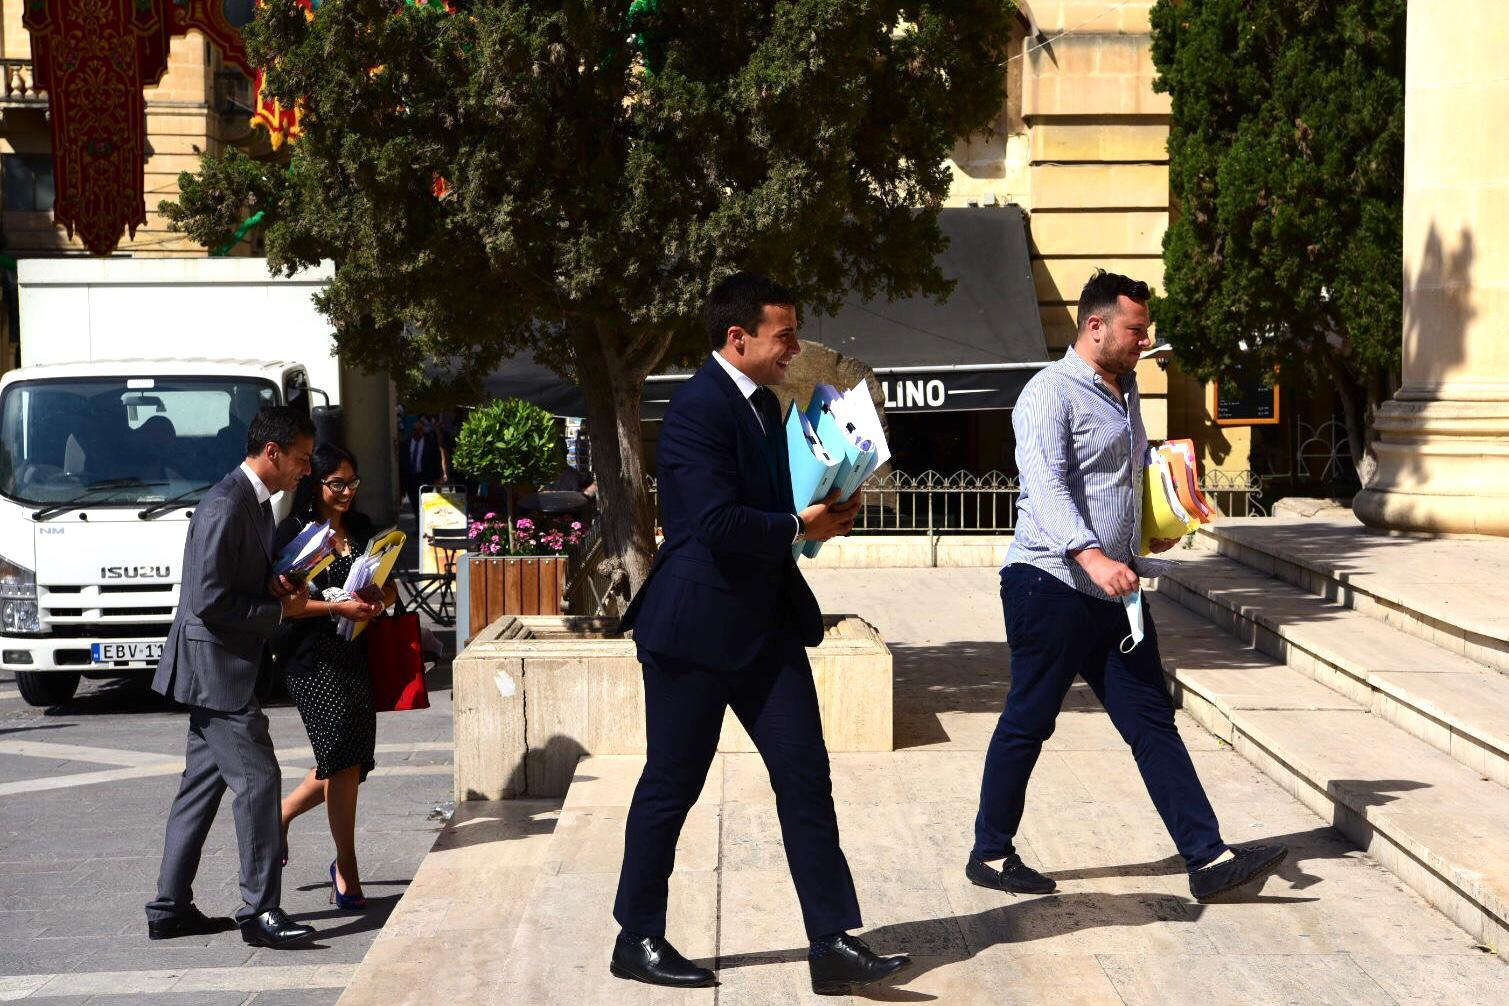 Charles Merceica (centre) part of the defence team of Yorgen Fenech who is accused of conspiring to kill Daphne Caruana Galizia. Photo: Mark Zammit Cordina/Facebook